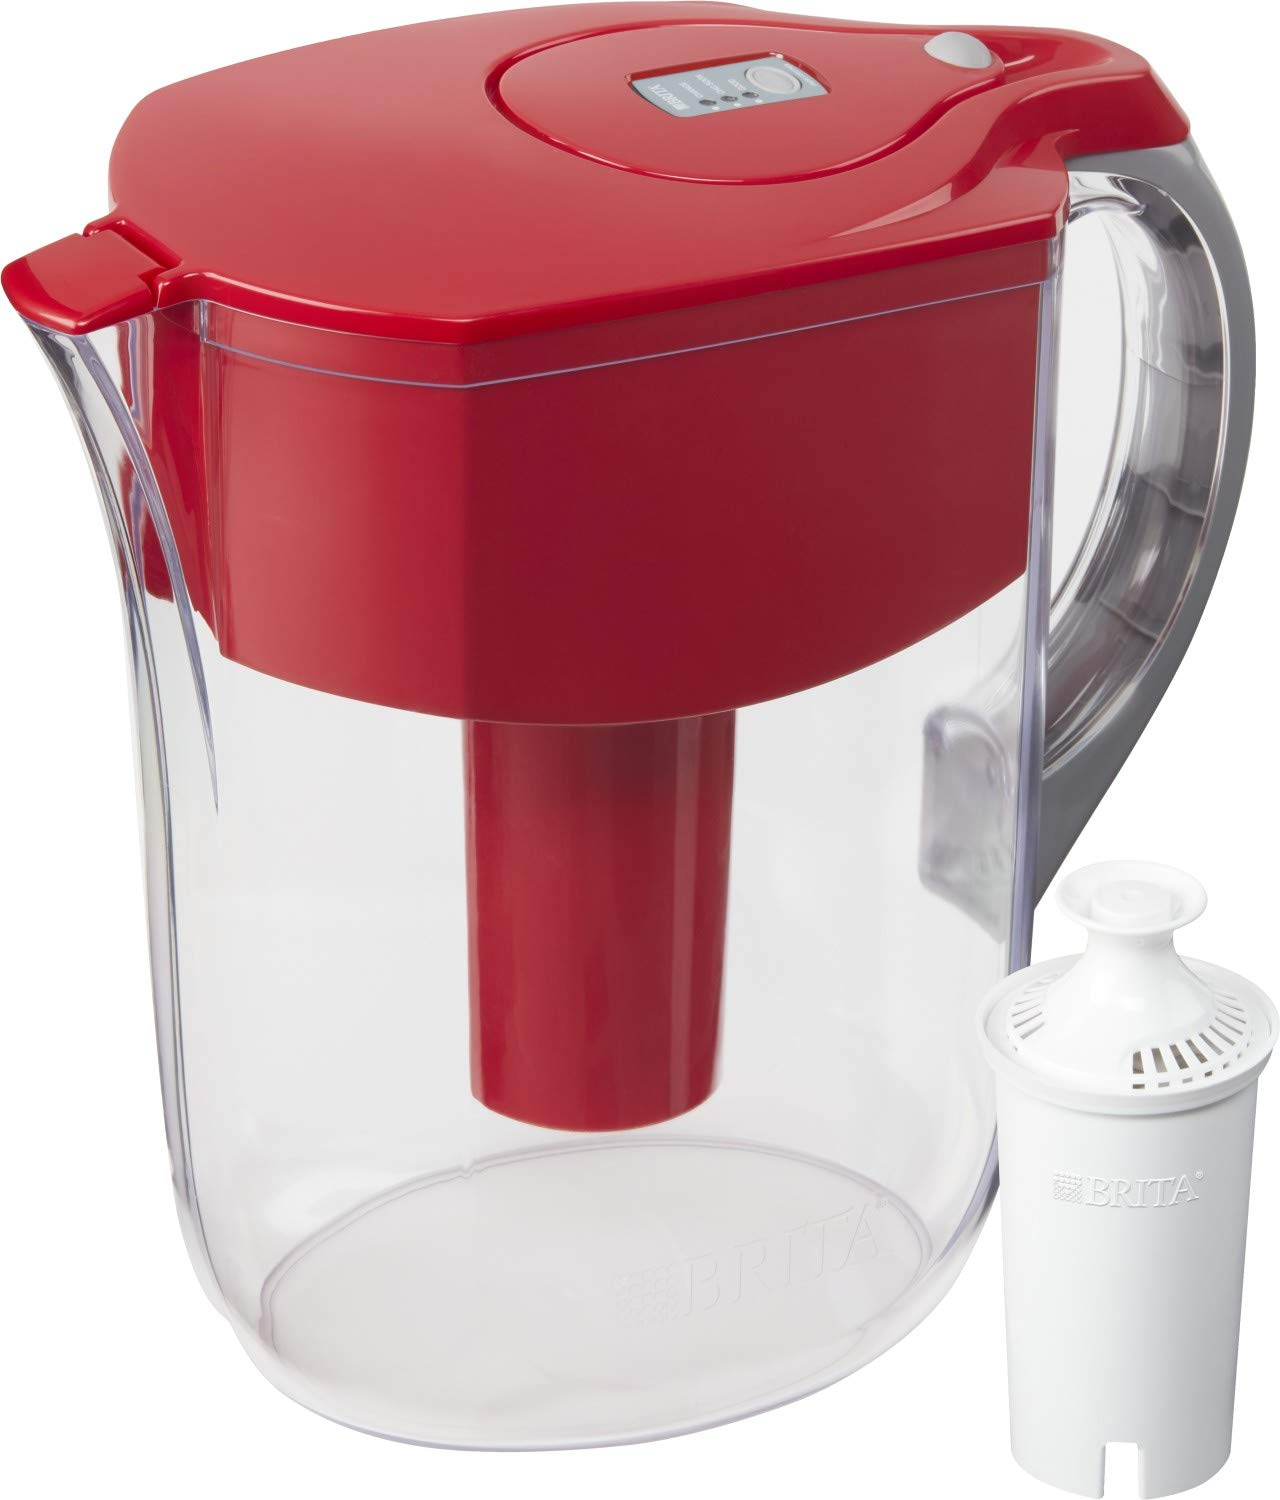 Brita Grand Pitcher with 1 Filter, Large 10 Cup, Red